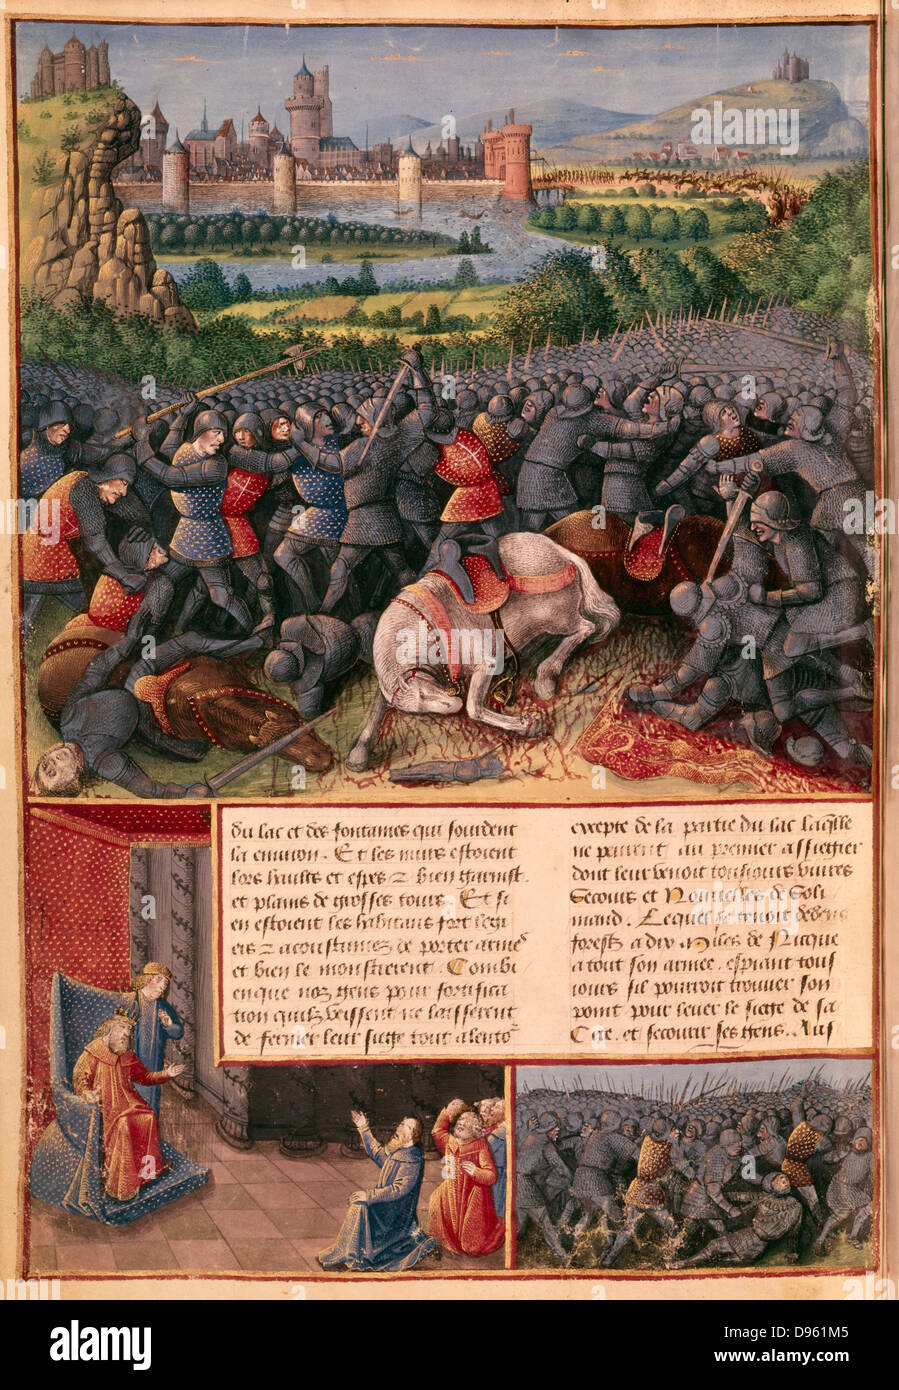 Battle during the First Crusade (The People's Crusade) 1096-1099. Mounted knights are unhorsed and killed, foreground. - Stock Image